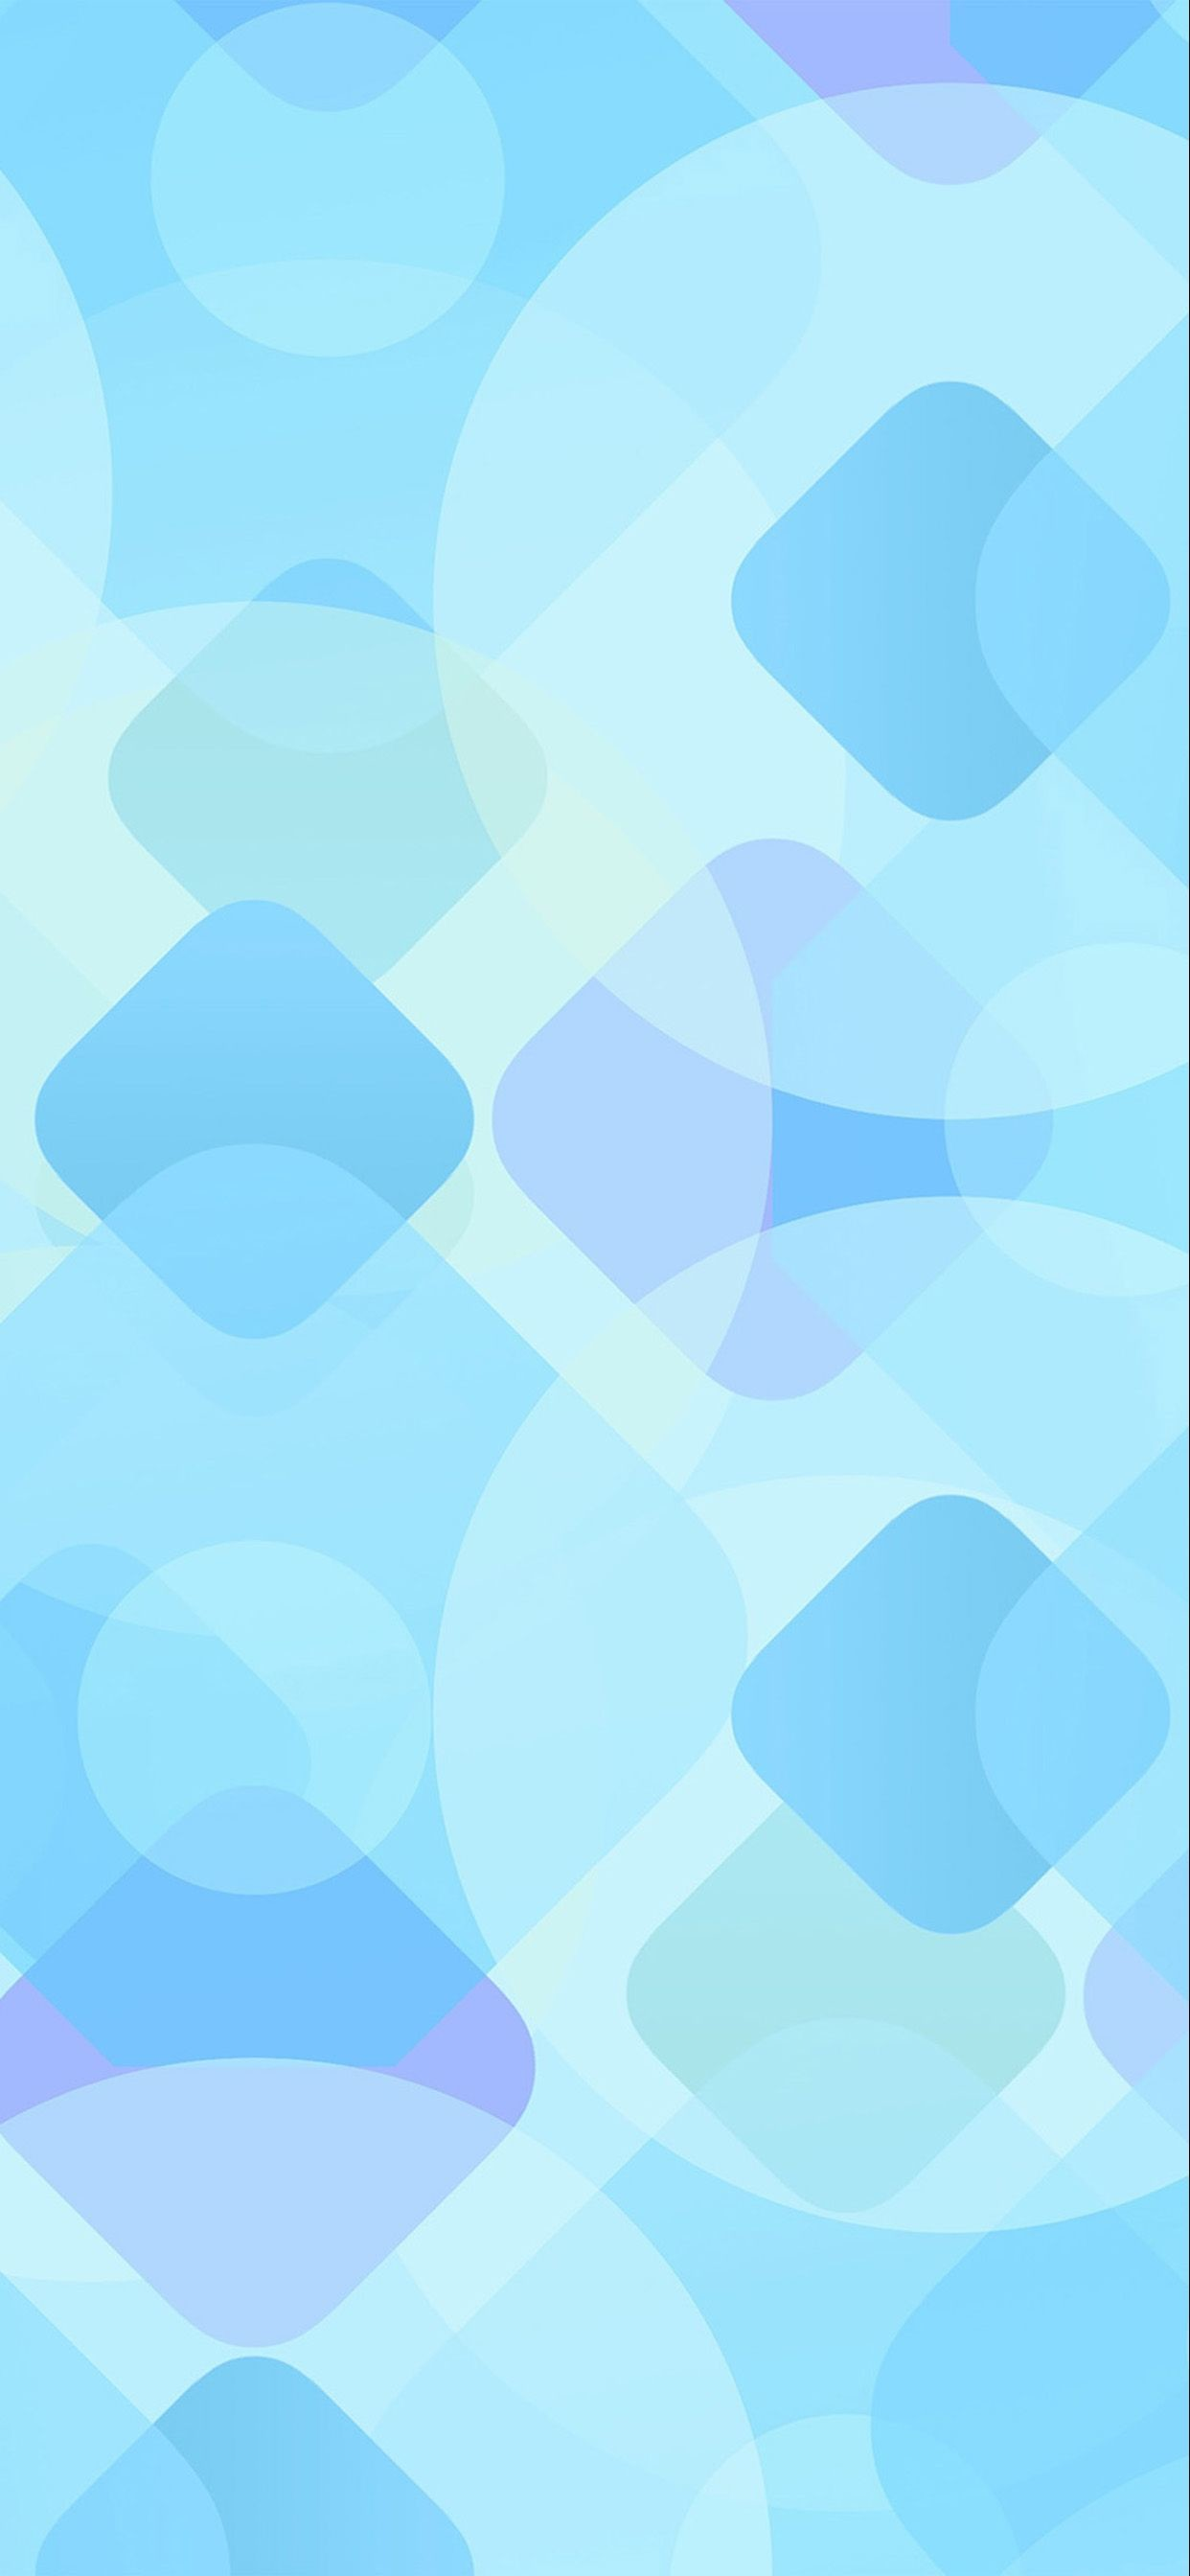 1242x2688 Cyan Blue, Blue Wallpapers, Design Elements, Mobiles, Iphone Wallpaper,  Backgrounds,